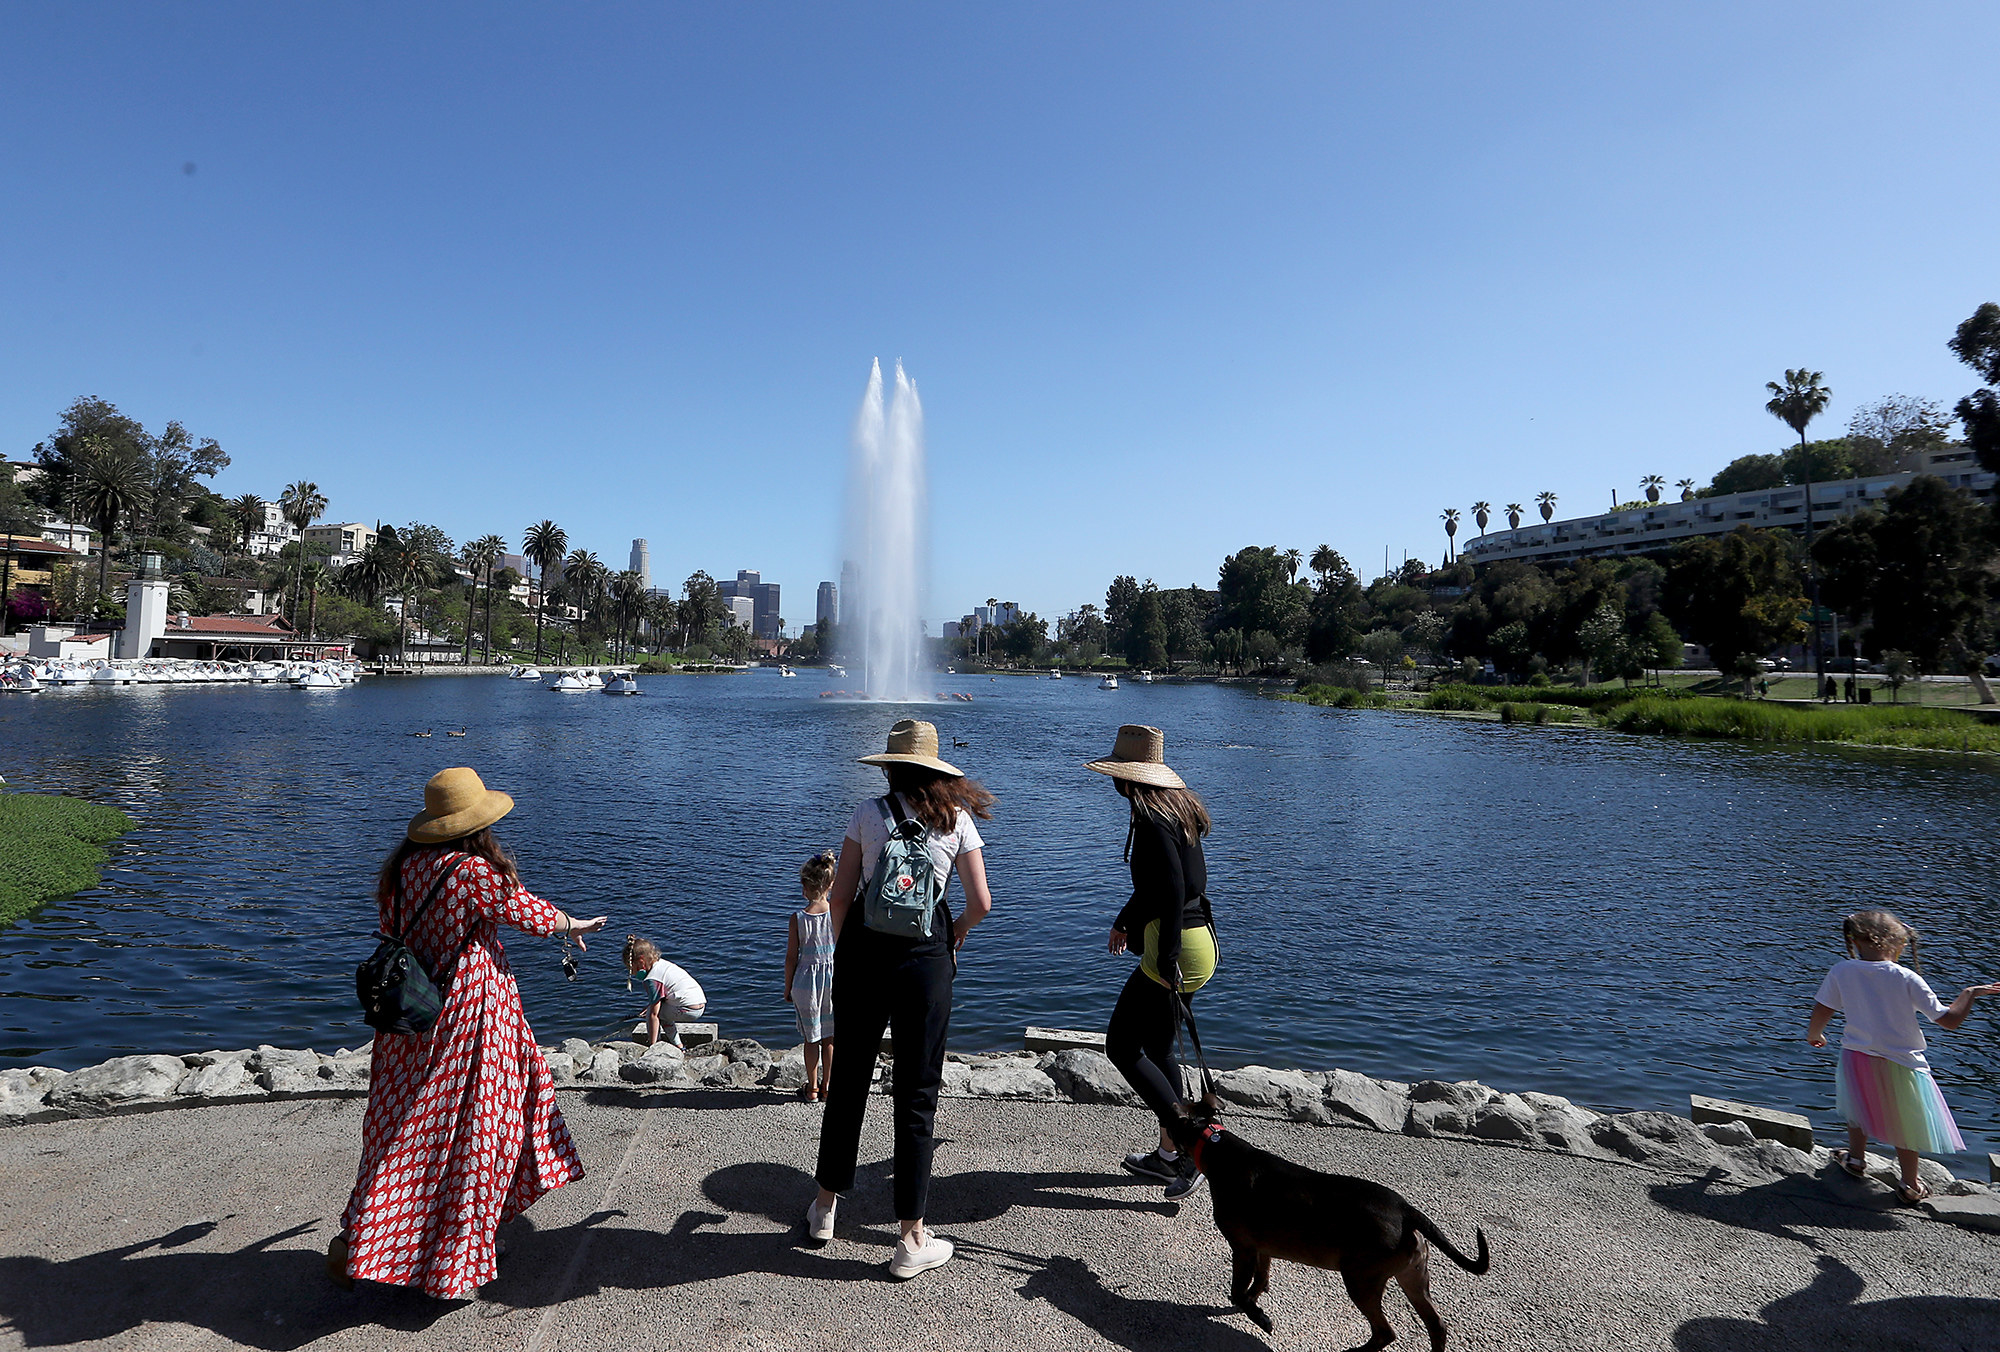 Three women in hats in front of a human-made fountain and a lake